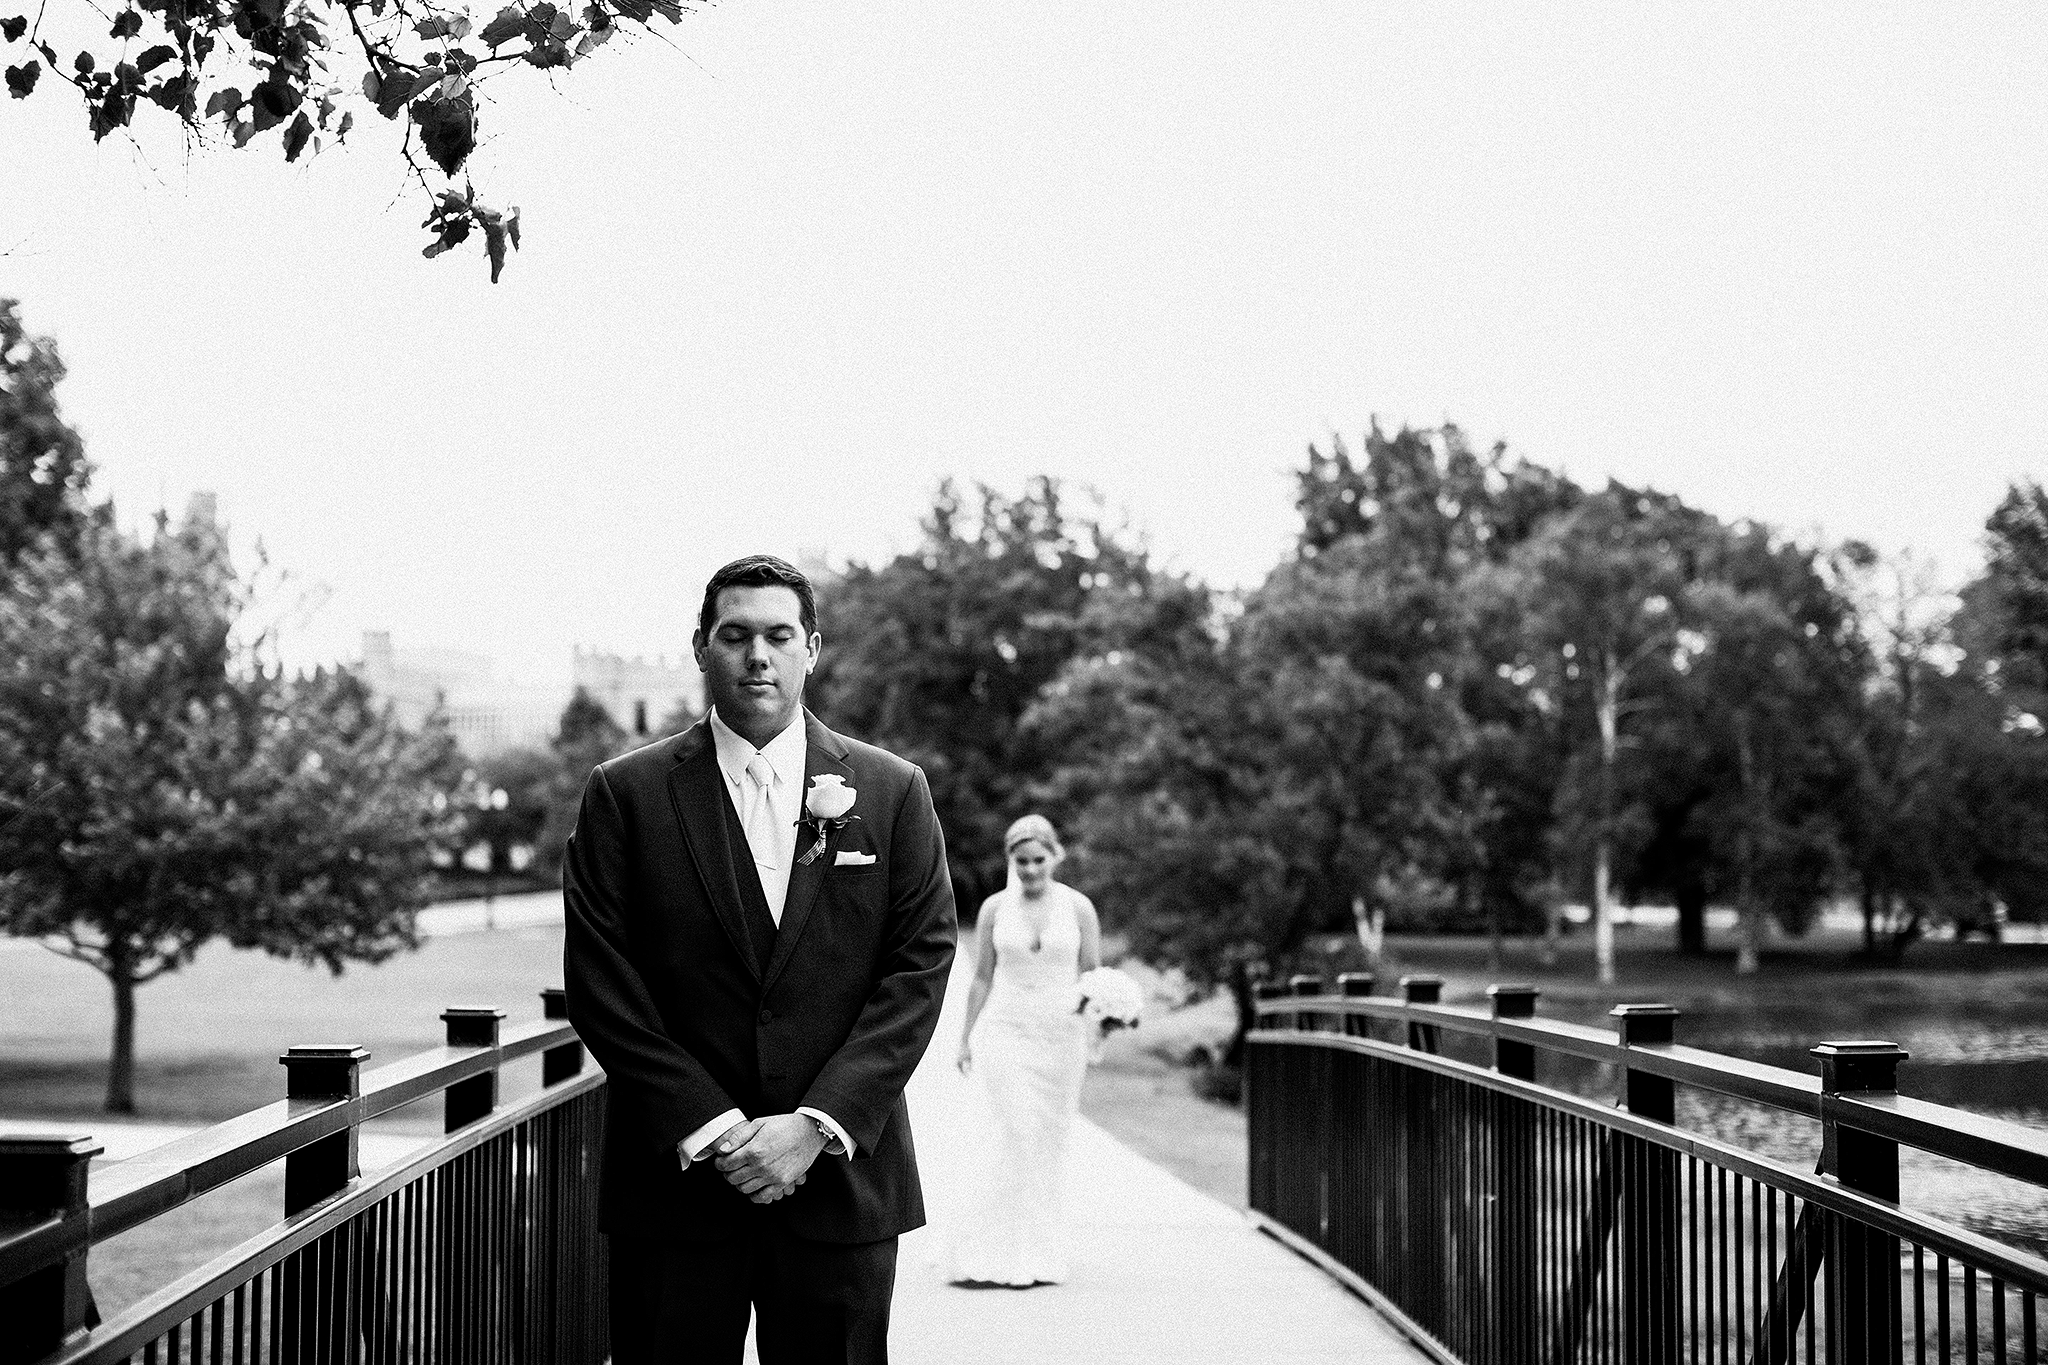 bride and groom first look | dekalb, IL wedding photographer | chrissy deming